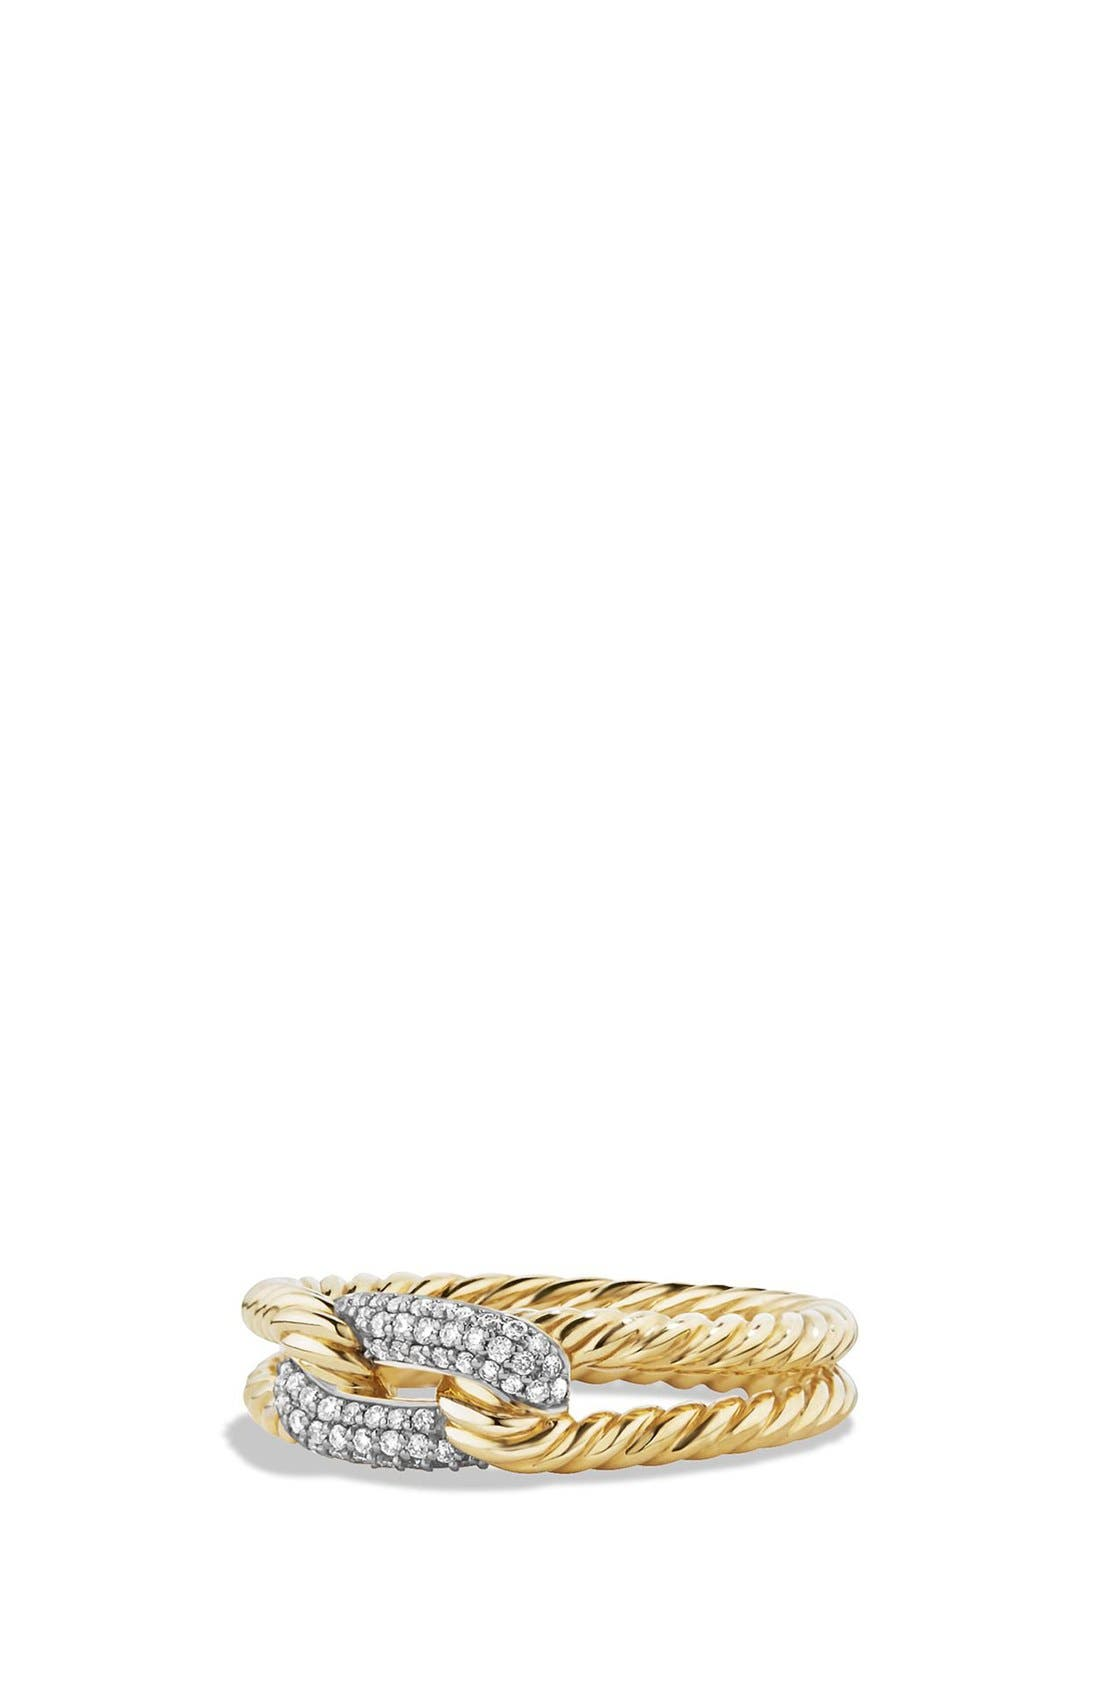 David Yurman 'Petite Pavé' Loop Ring with Diamonds in 18K Gold